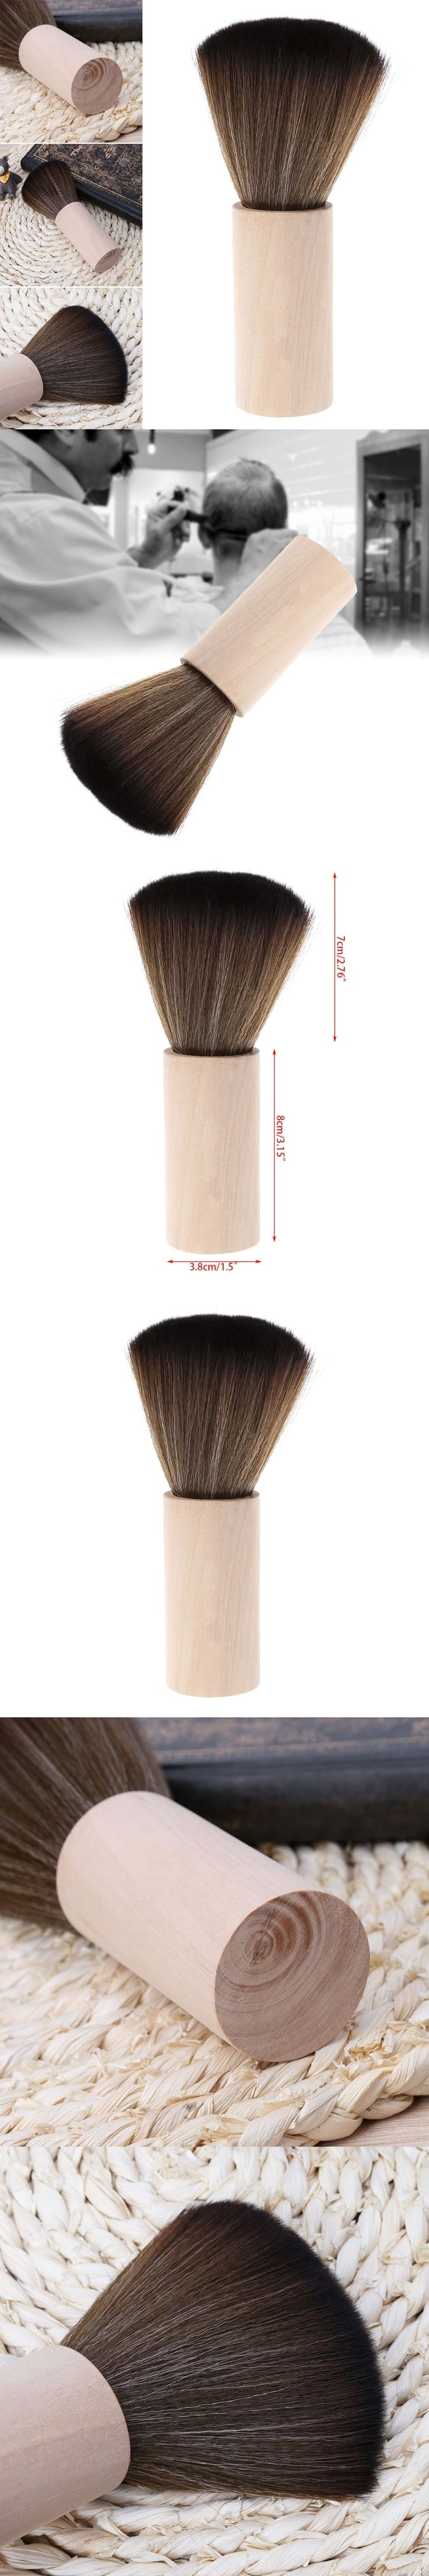 Cleaning Hairbrush Hairdressing Neck Face Duster Salon Stylist Barber Hair Cutting Tool Hair Sweep Soft Brush Wood Handle